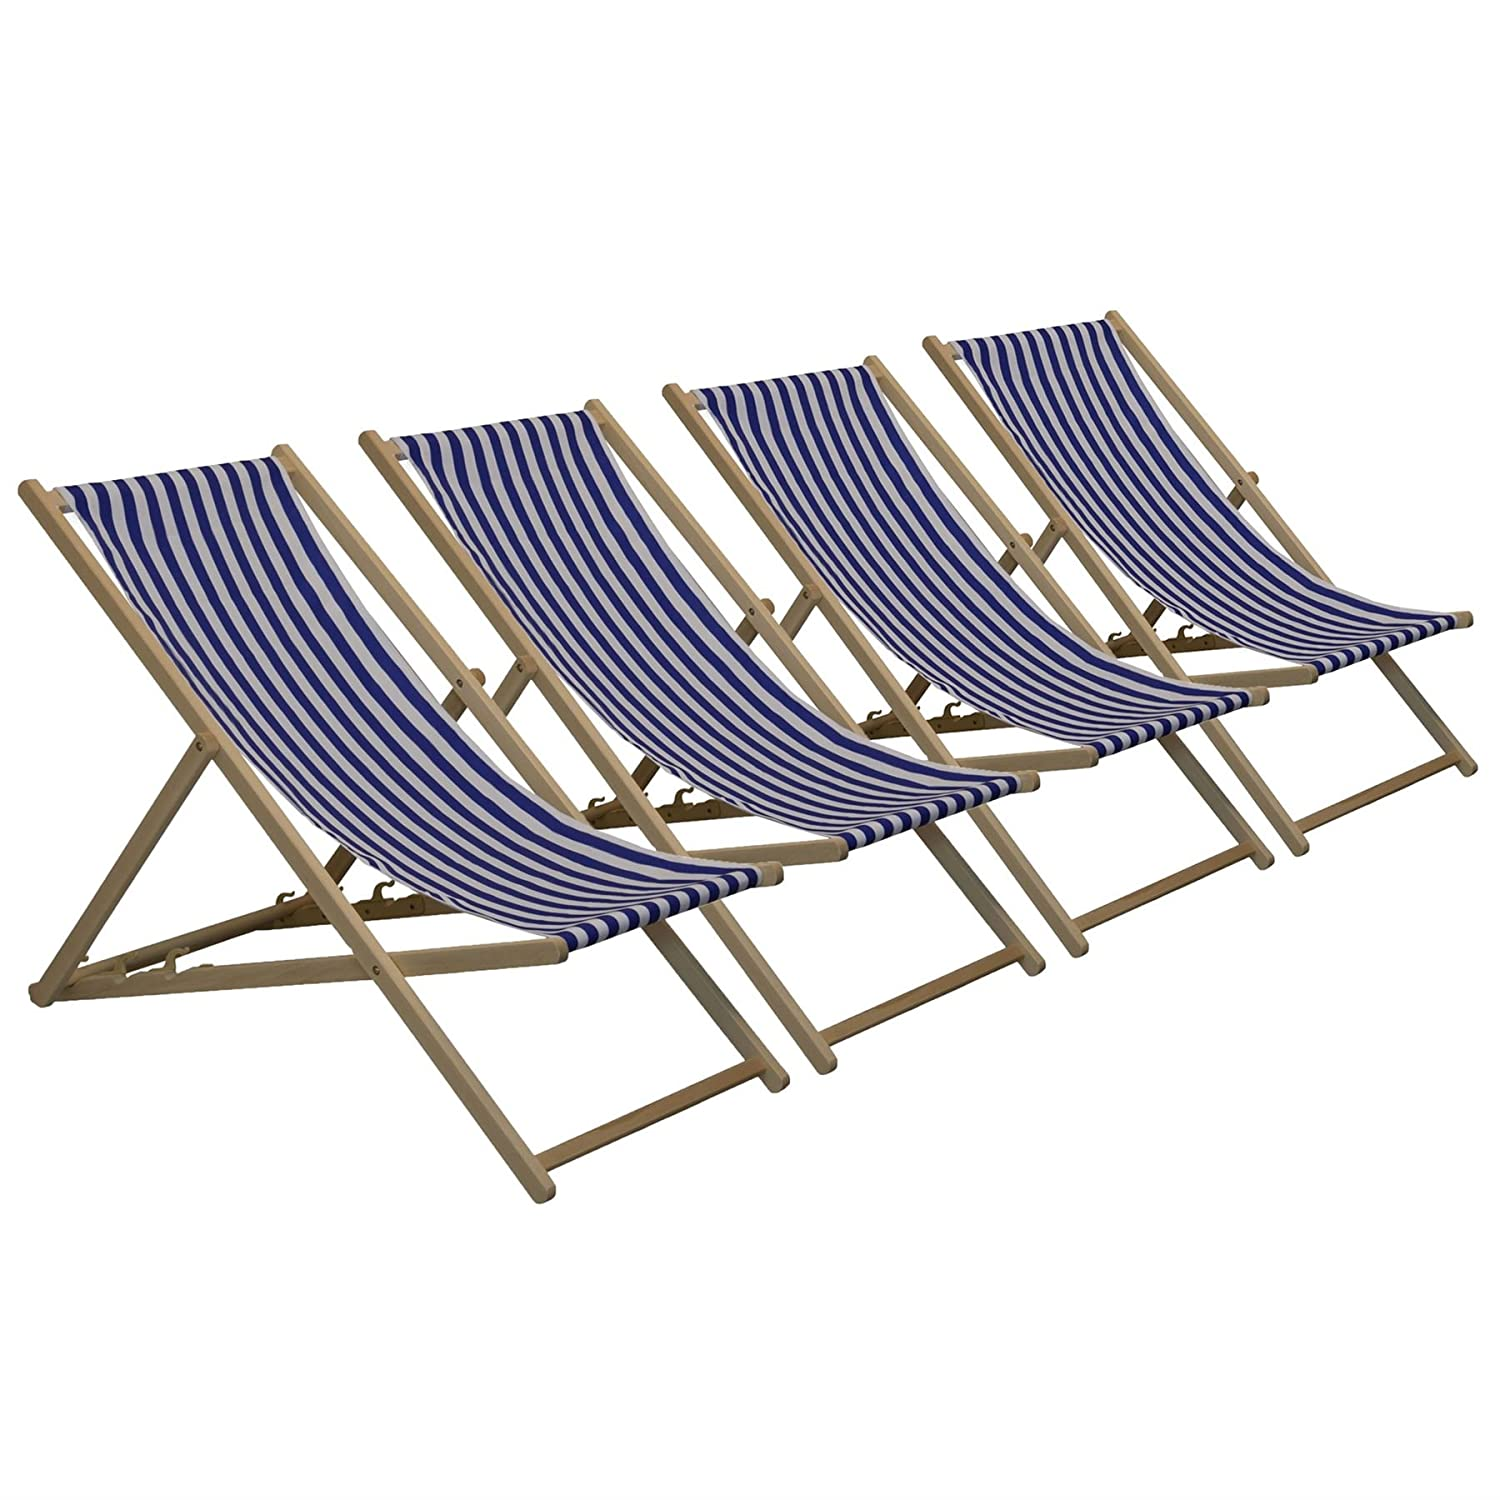 Traditional Adjustable Garden / Beach-style Deck Chair - Blue / White Stripe - Pack of 4 Harbour Housewares